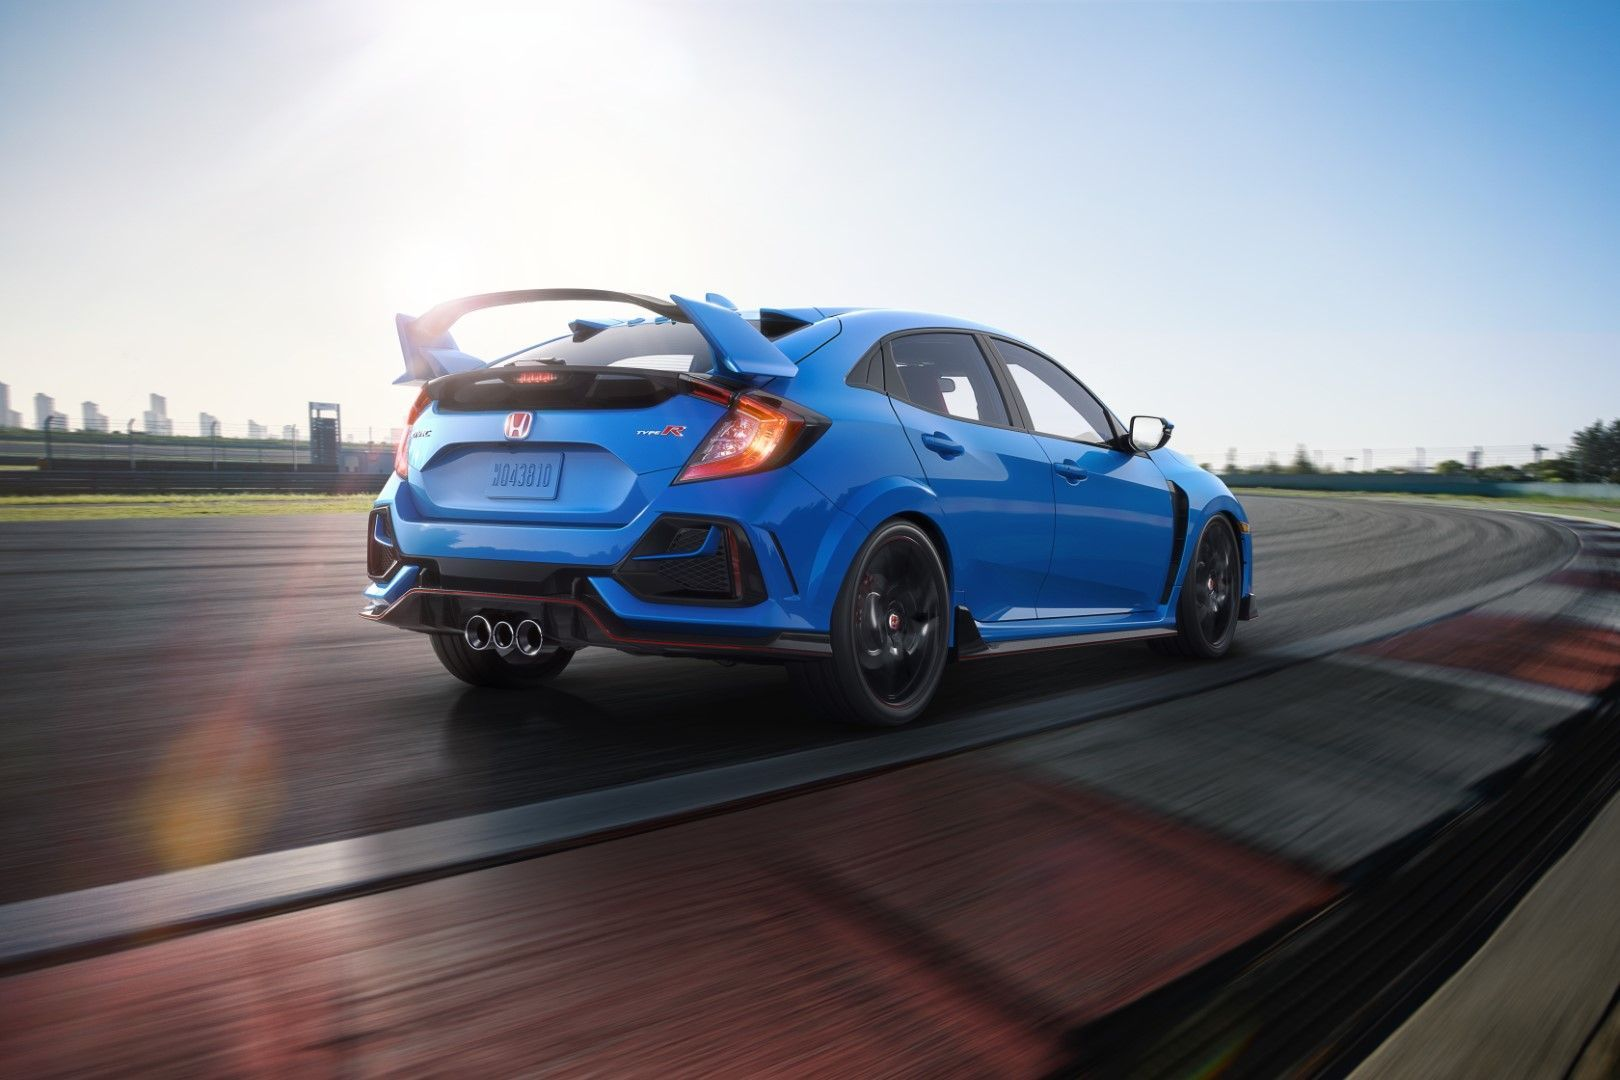 2020 Honda Civic Type R minor changes mark the 2nd last